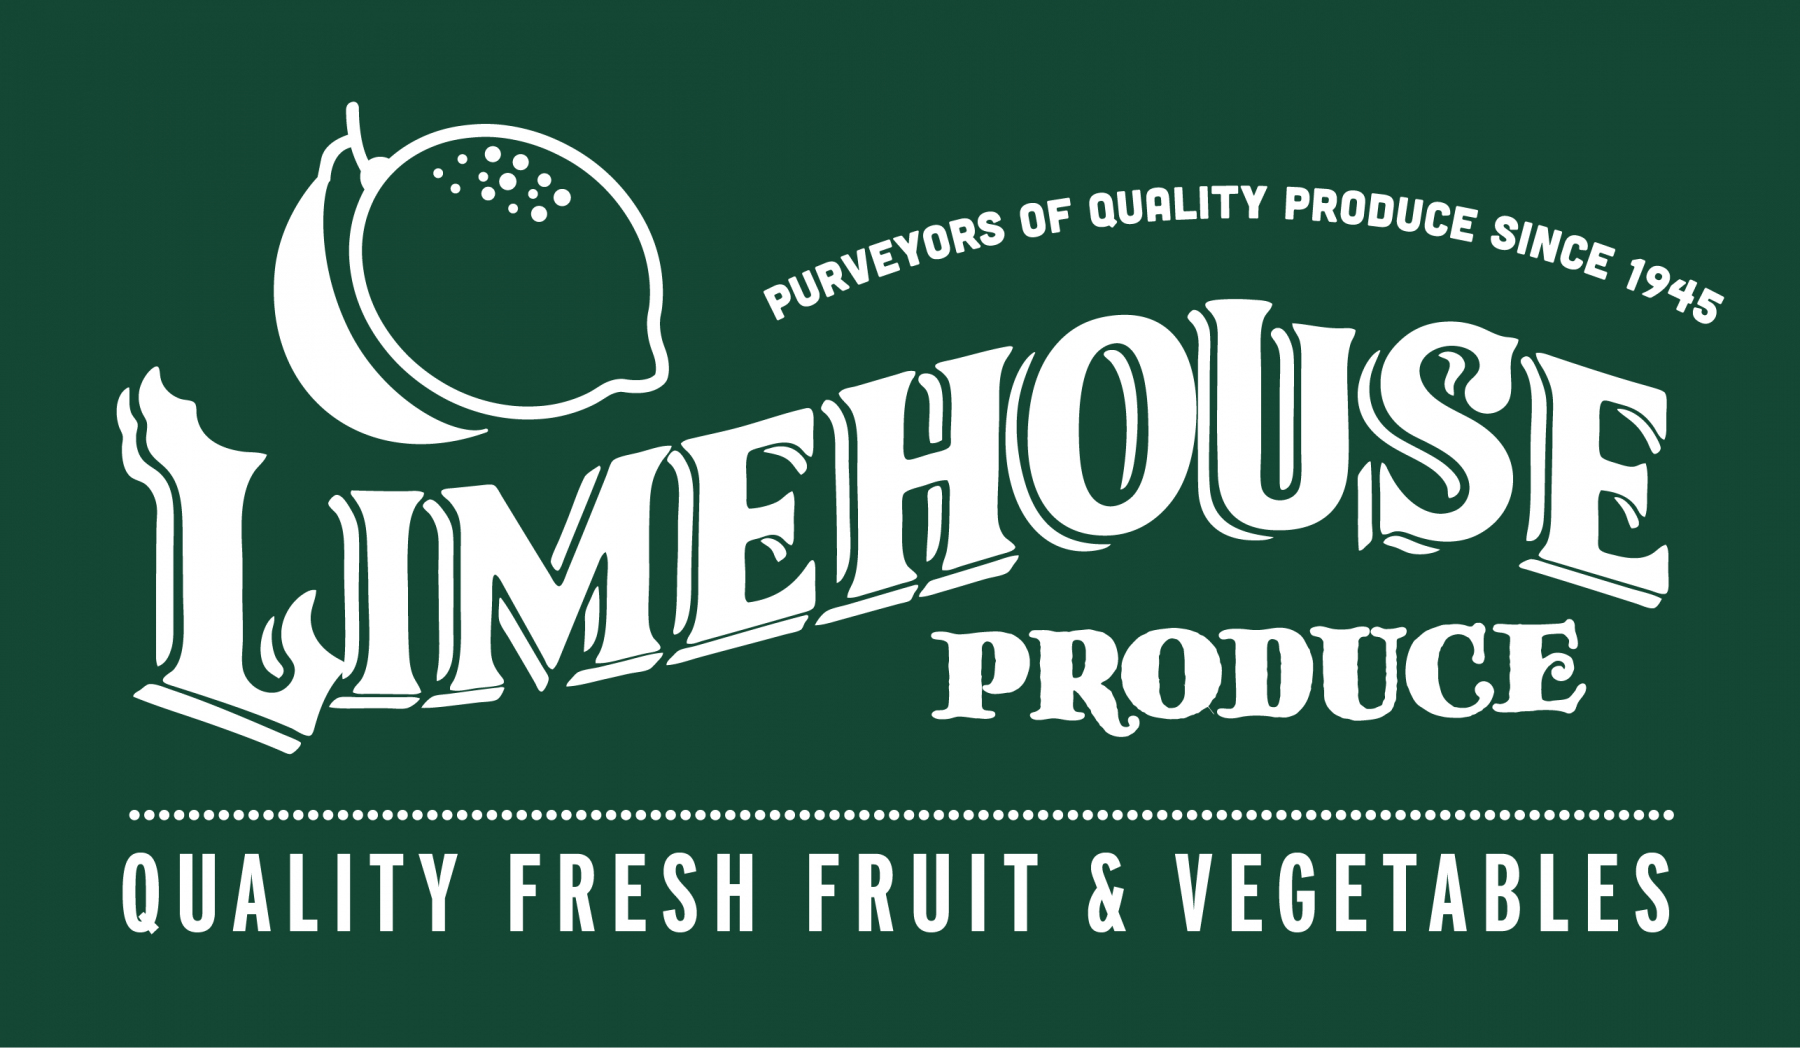 Limehouse Produce